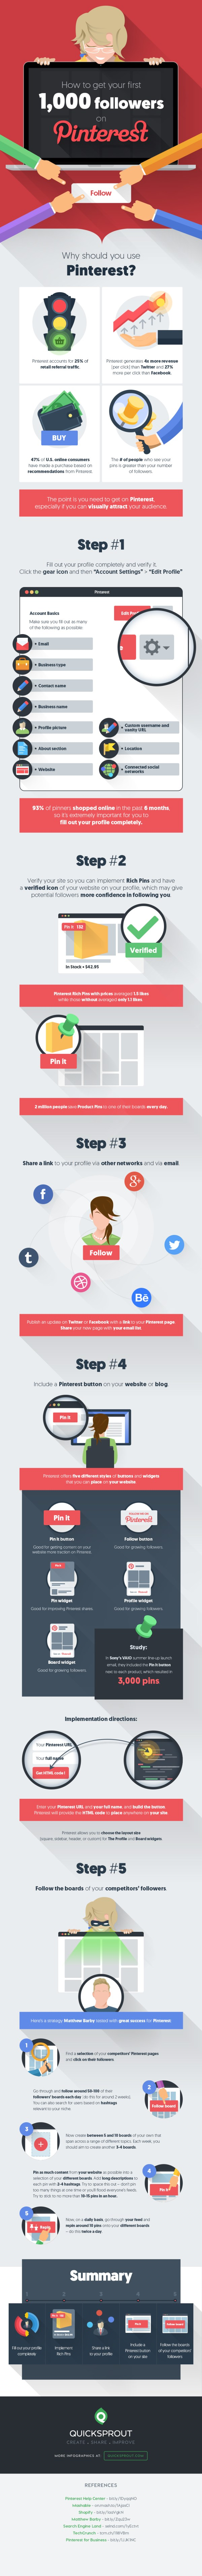 How to Get More Pinterest Followers and Increase Your Blog Site Traffic [Infographic]